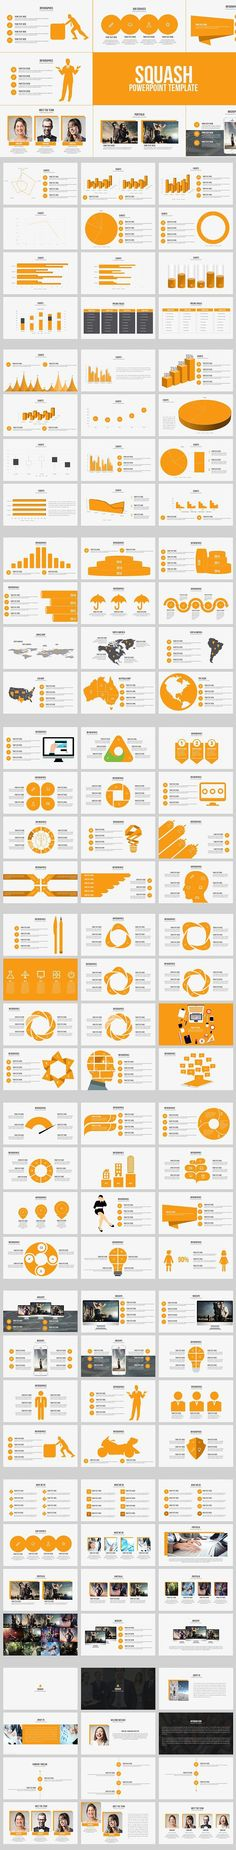 Infographic Ideas infographic powerpoint templates : Medical PPT Vertical Template